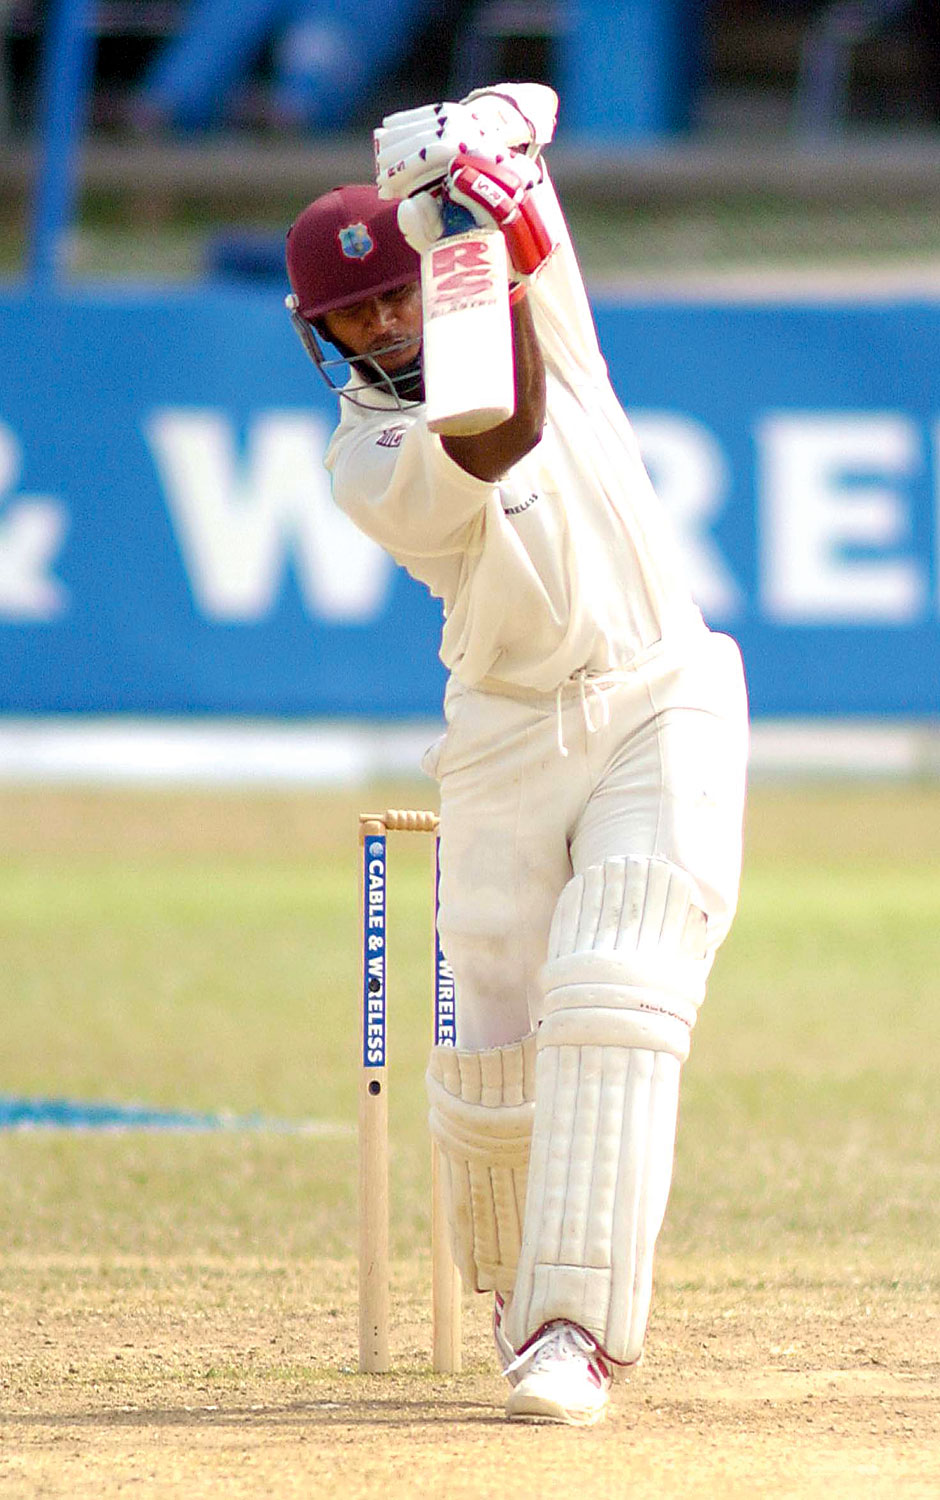 West Indies batsman Daren Ganga drives for runs during a knock of a century against Australia at the Queens Park Oval, Trinidad. Photograph by Iossjr